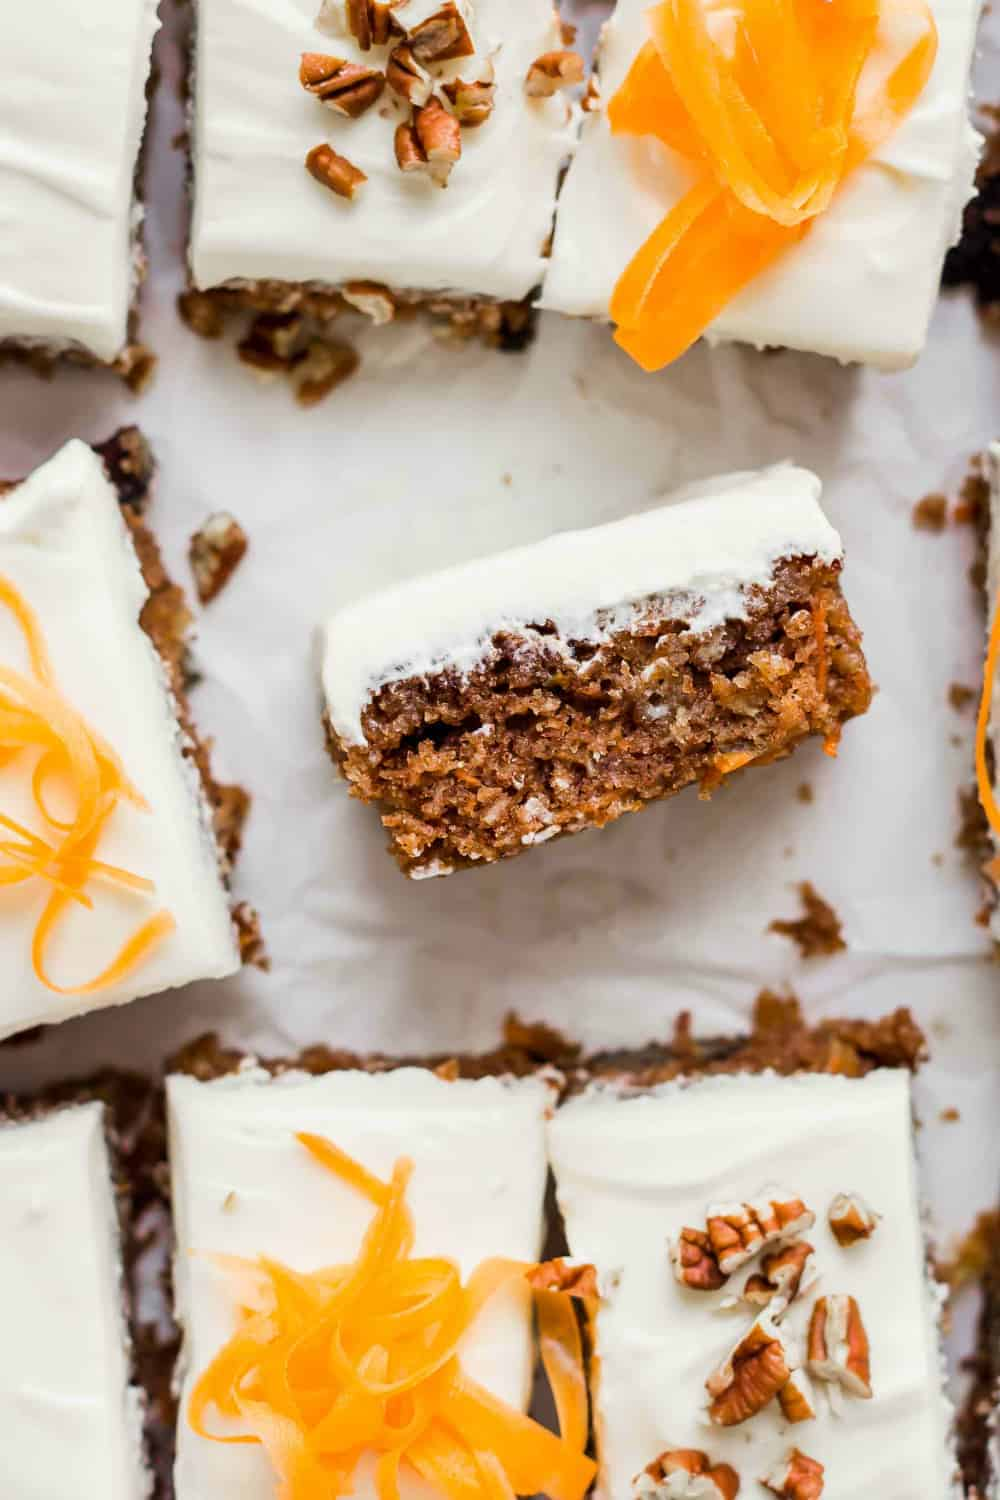 Top this moist carrot cake with sweet frosting for a delightful copycat of J Alexander's cake!